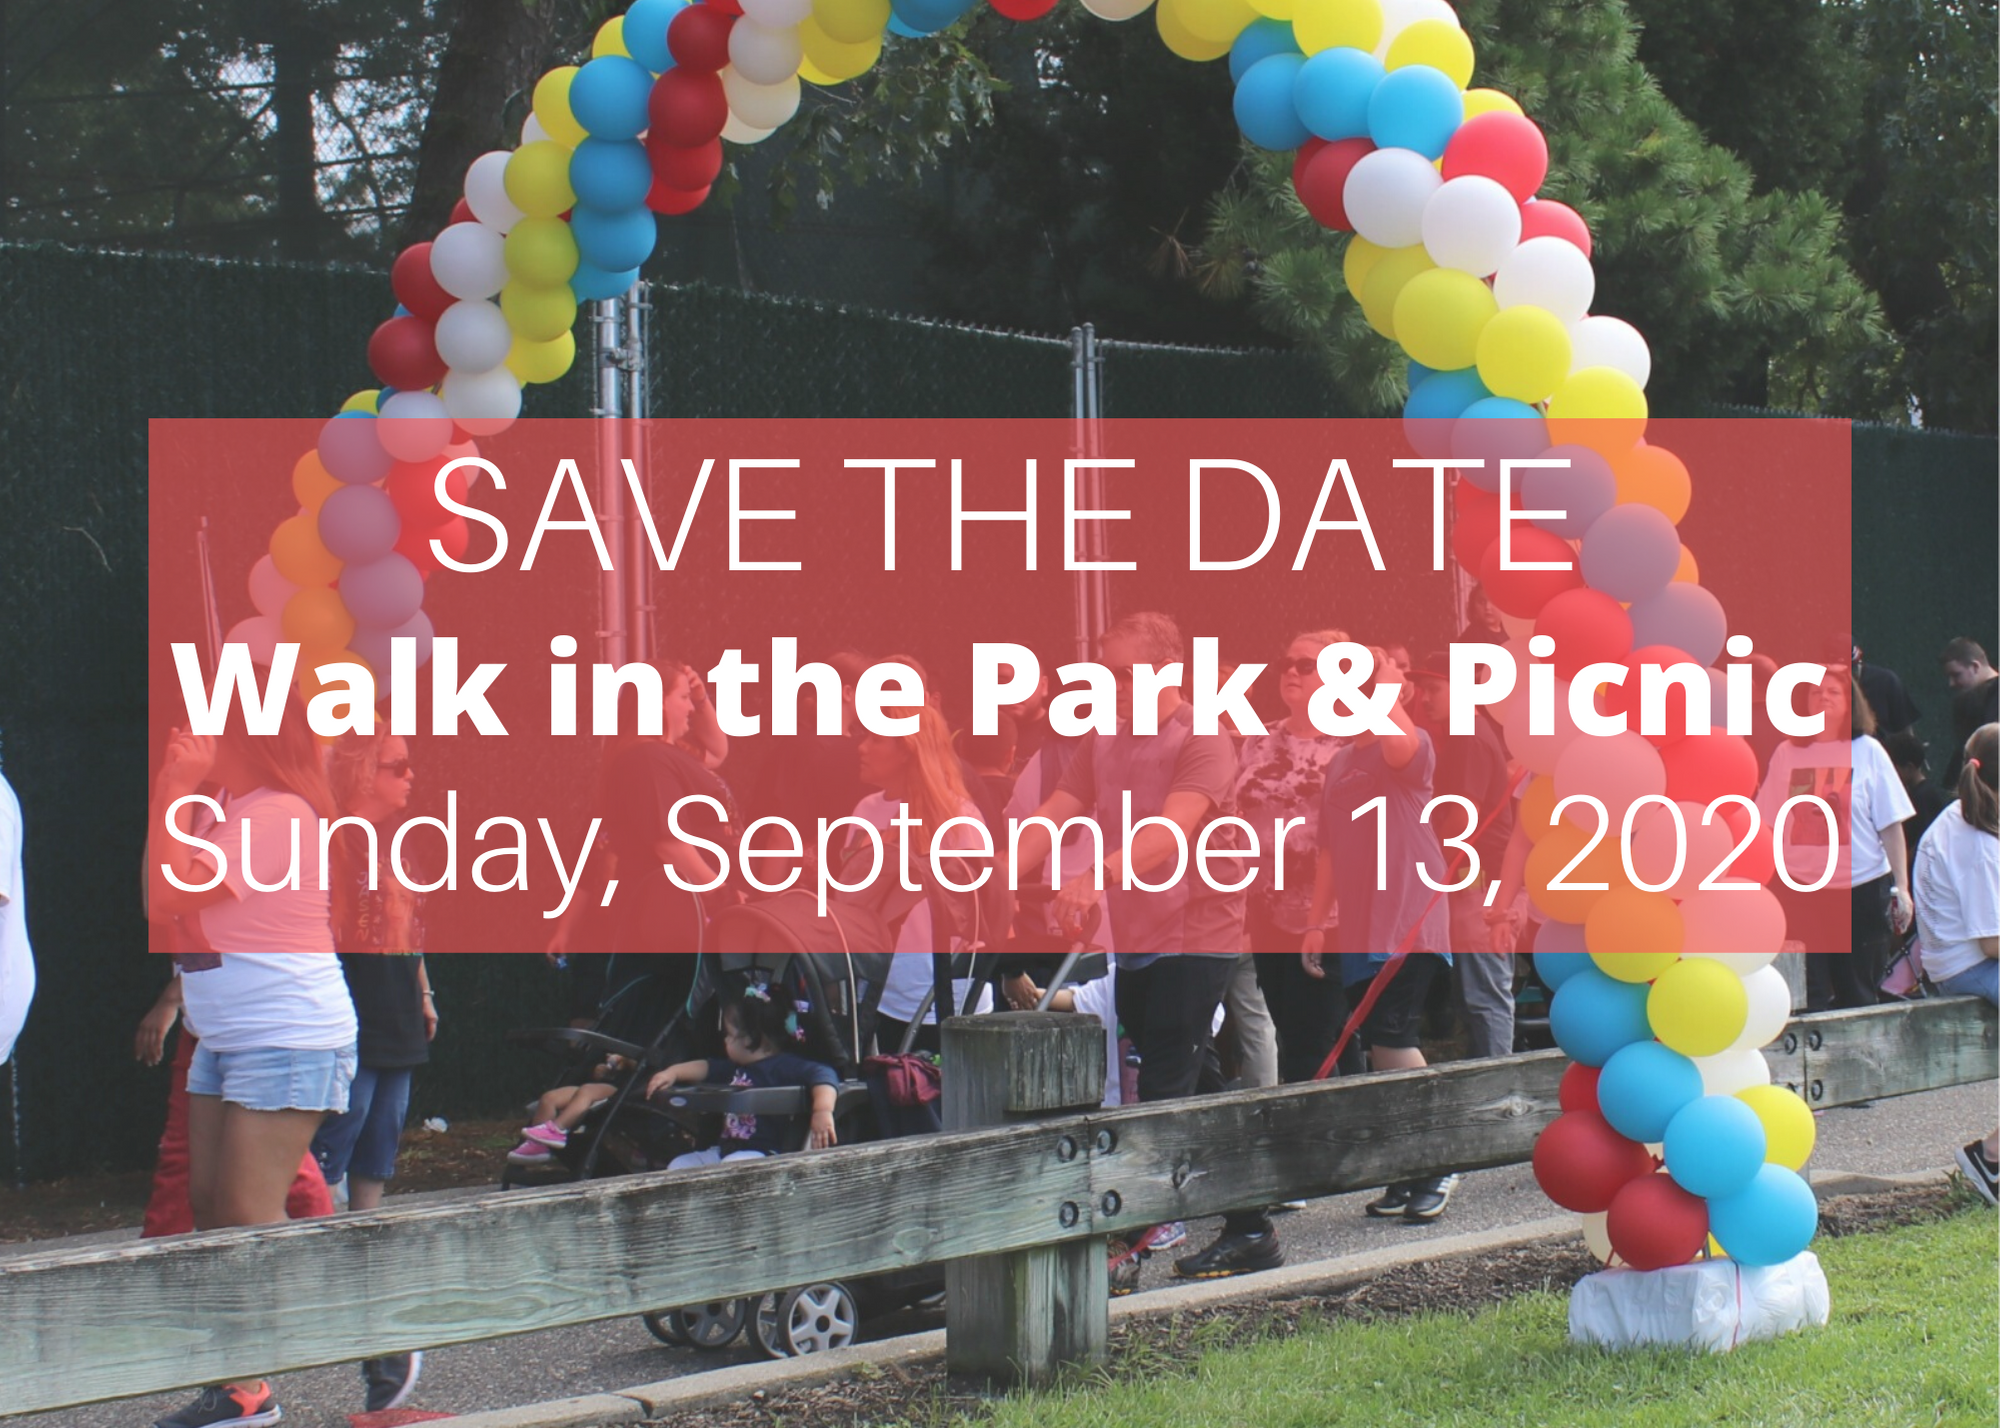 Walk save the date